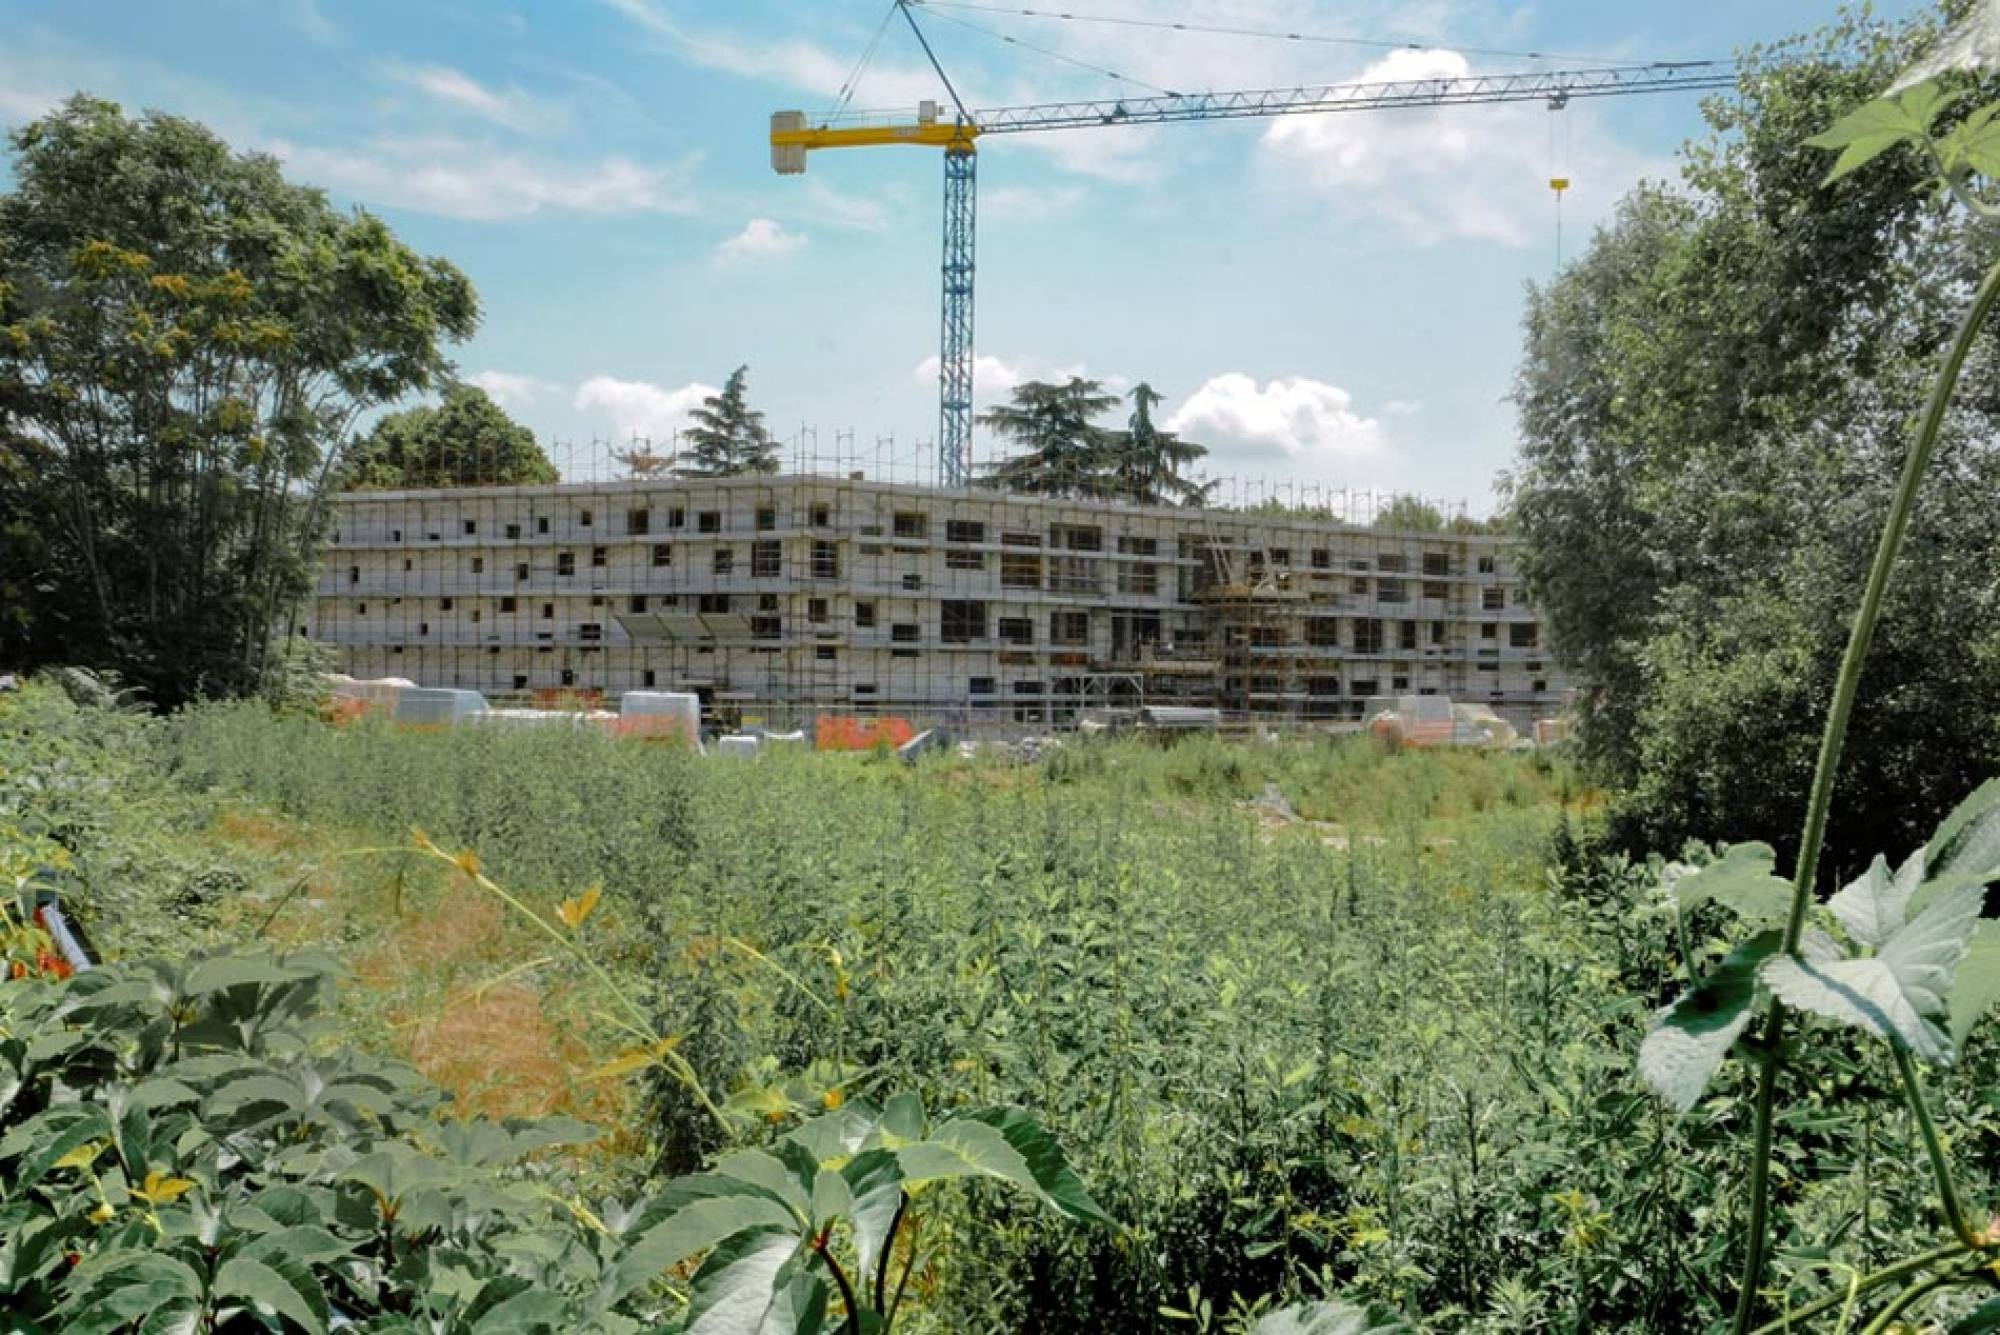 Designed by Piuarch, the Collegio di Milano is now almost completed